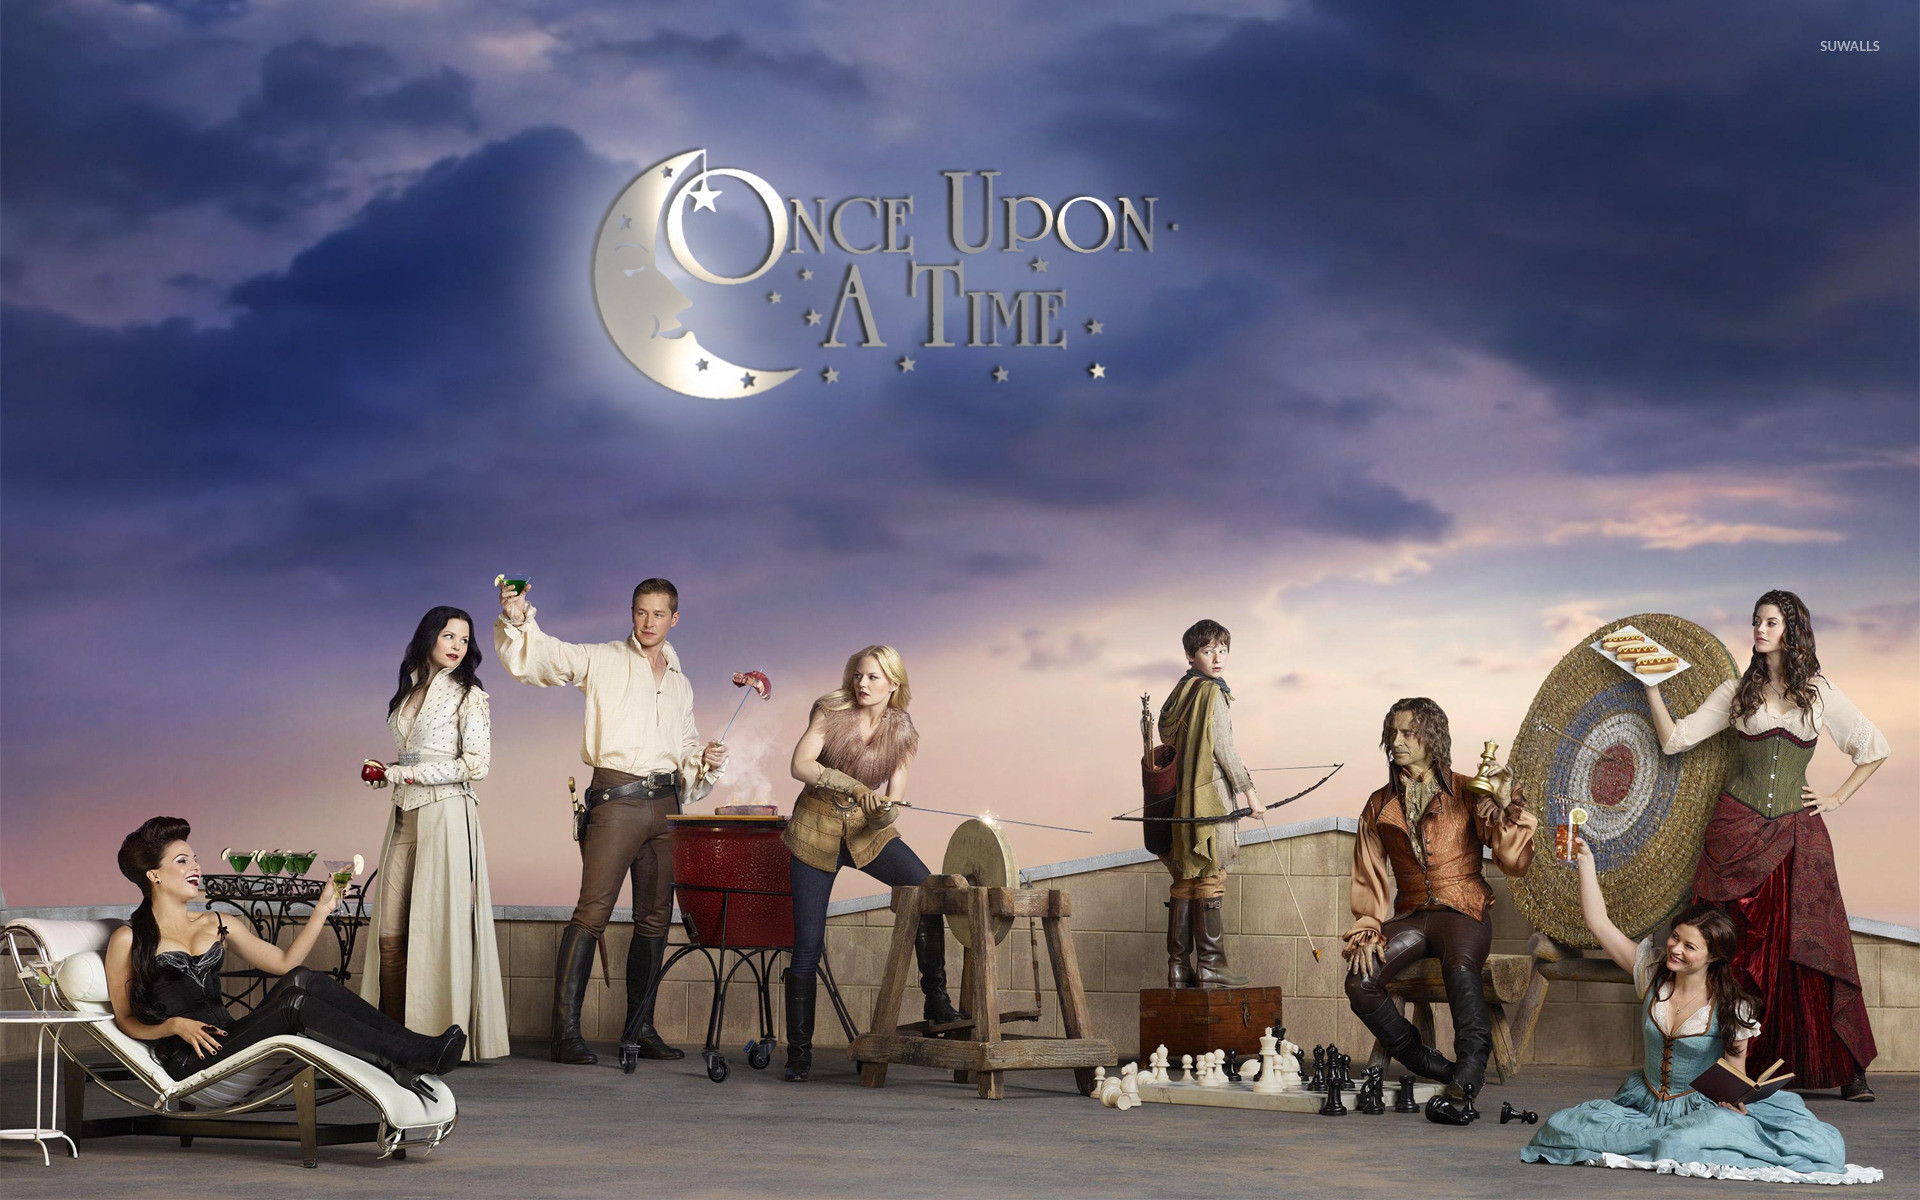 Once Upon a Time wallpaper jpg